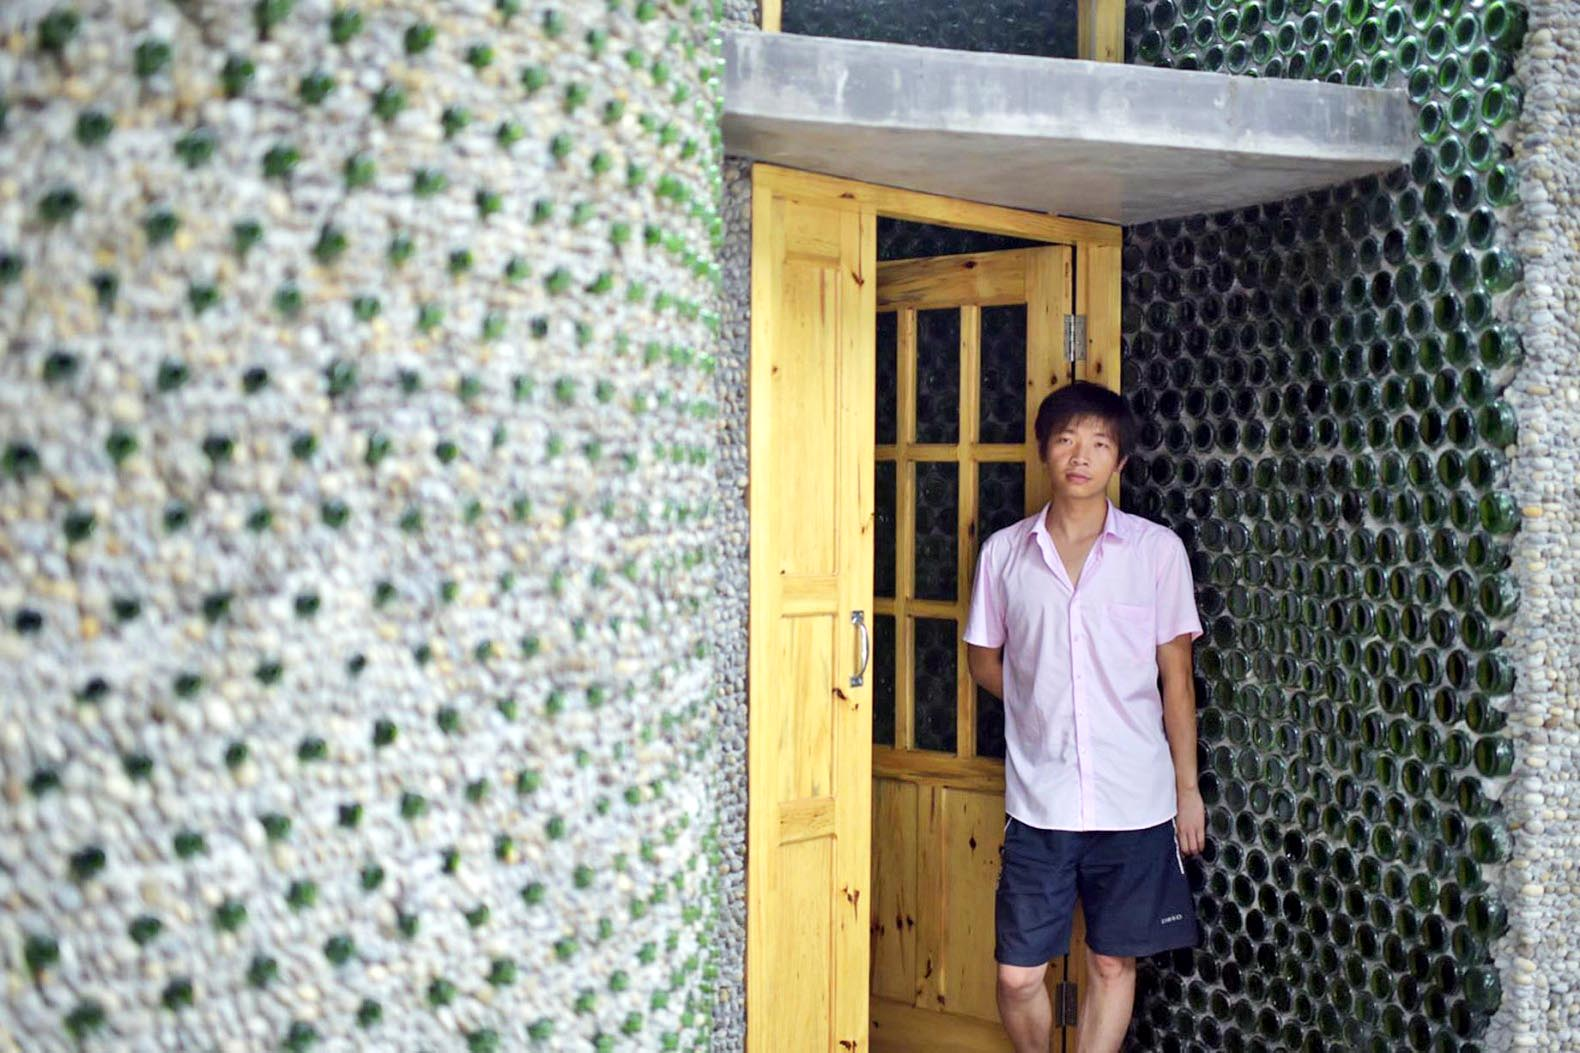 Aspiring Chinese architect built his office out of 8,500 recycled beer bottles